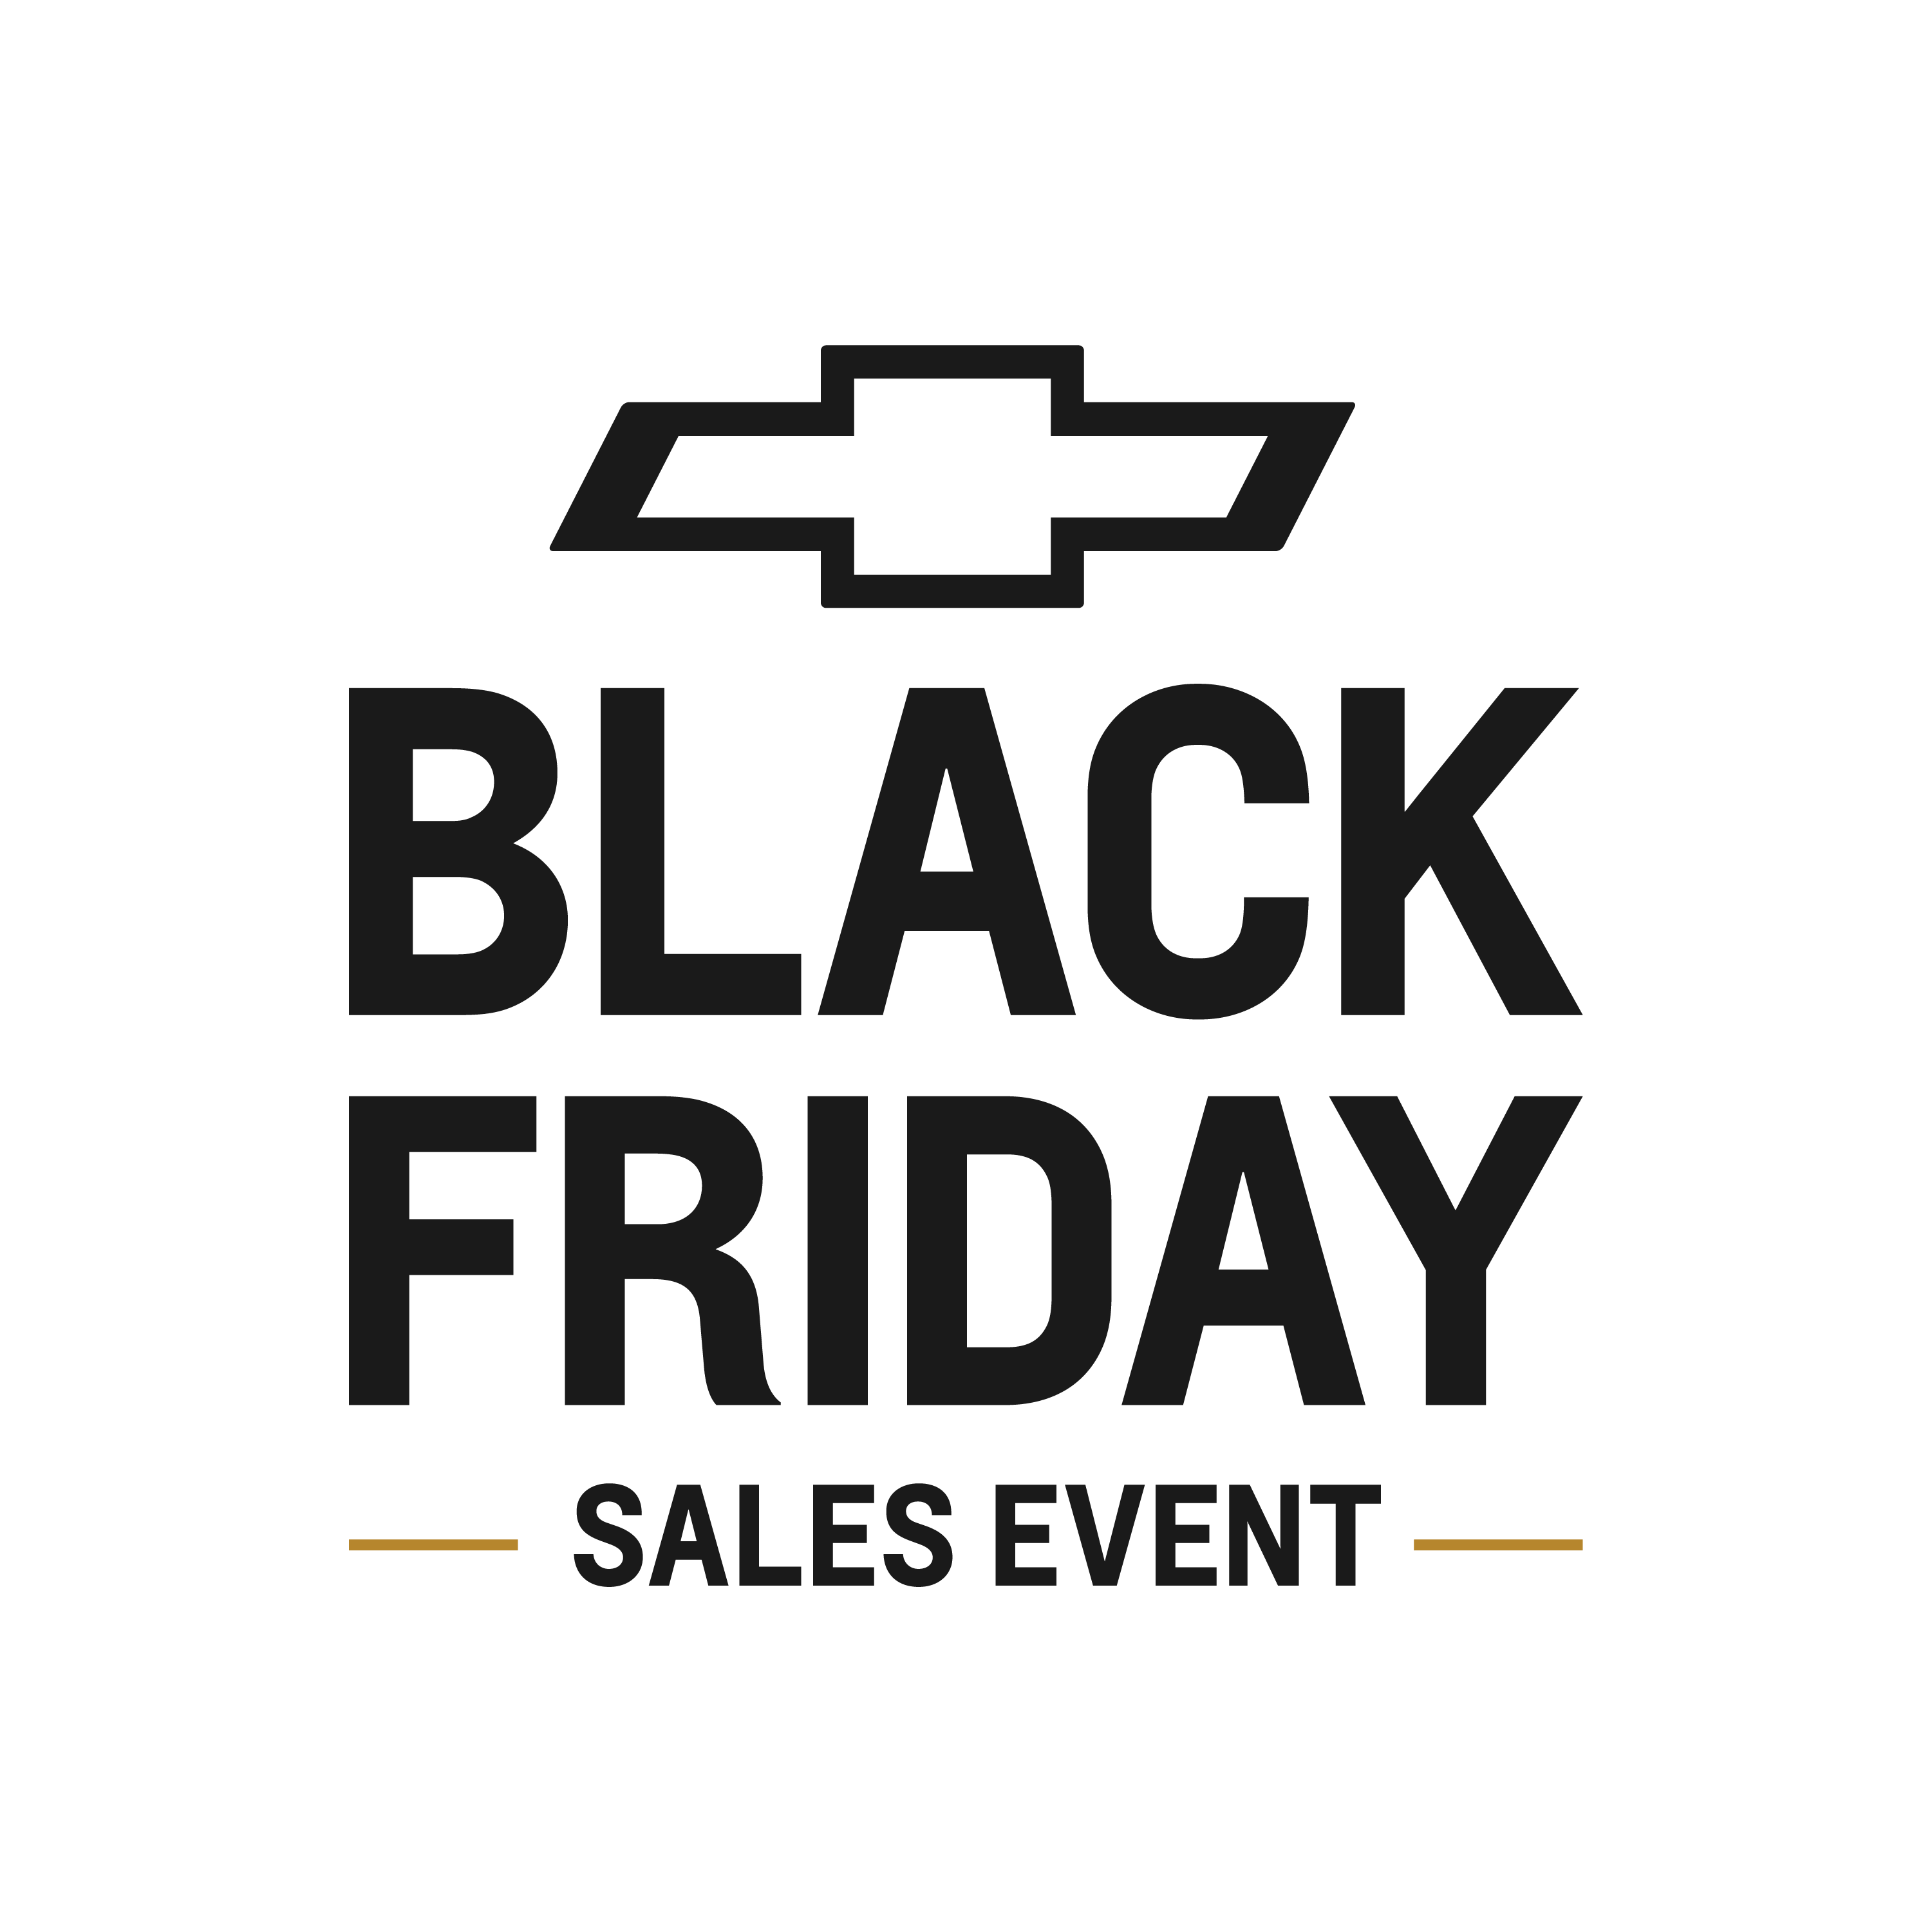 Chevy Logo with black Friday sales event message